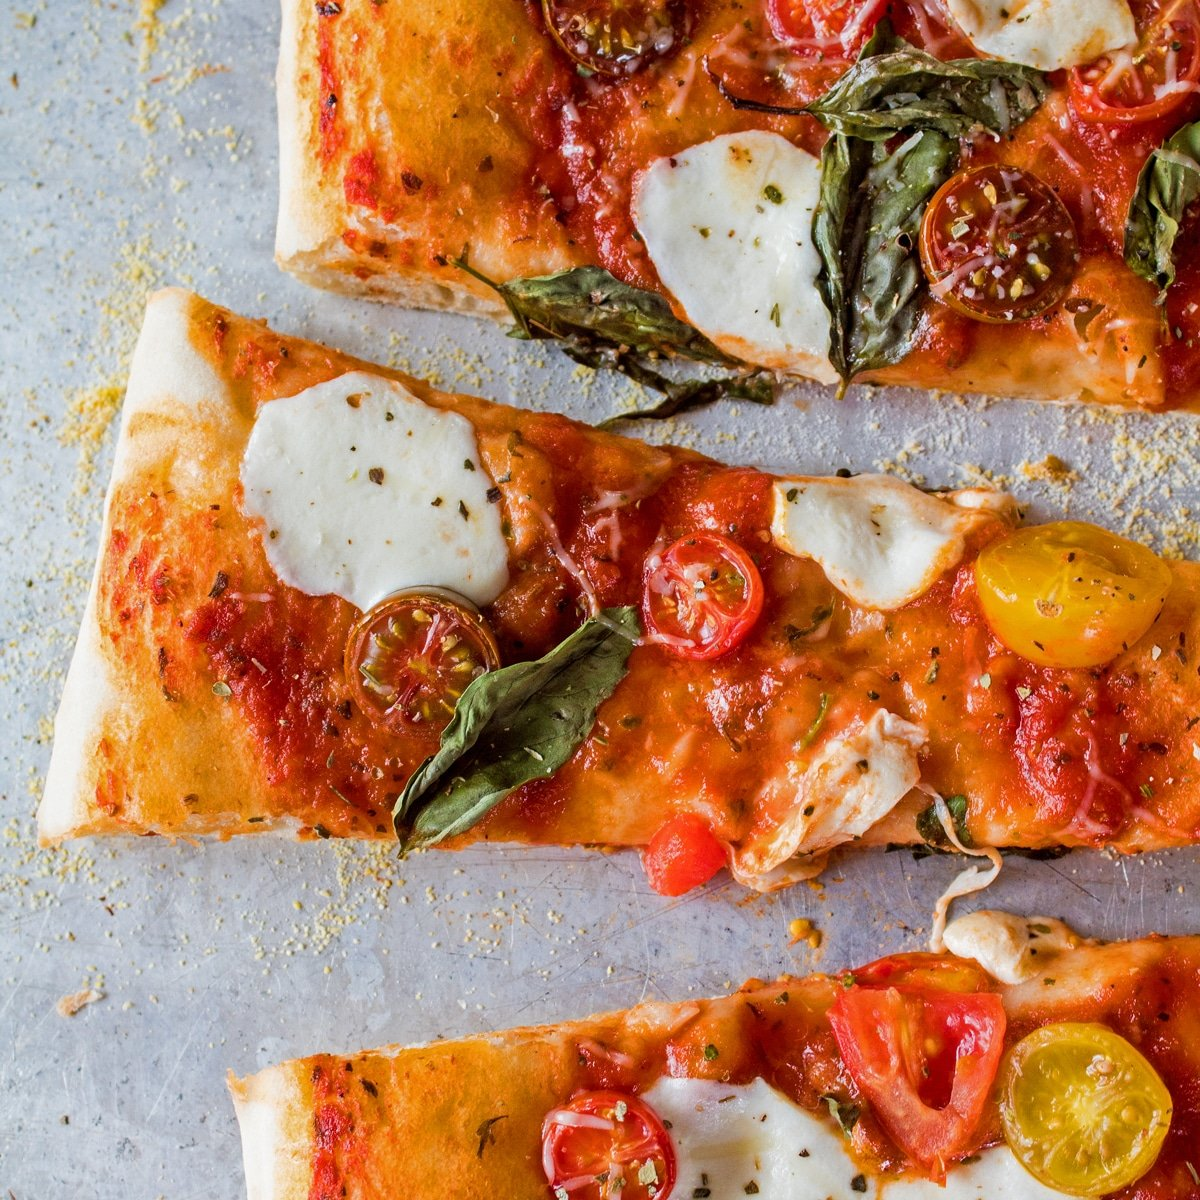 How to reheat pizza in the oven, the right way so it's wonderful.